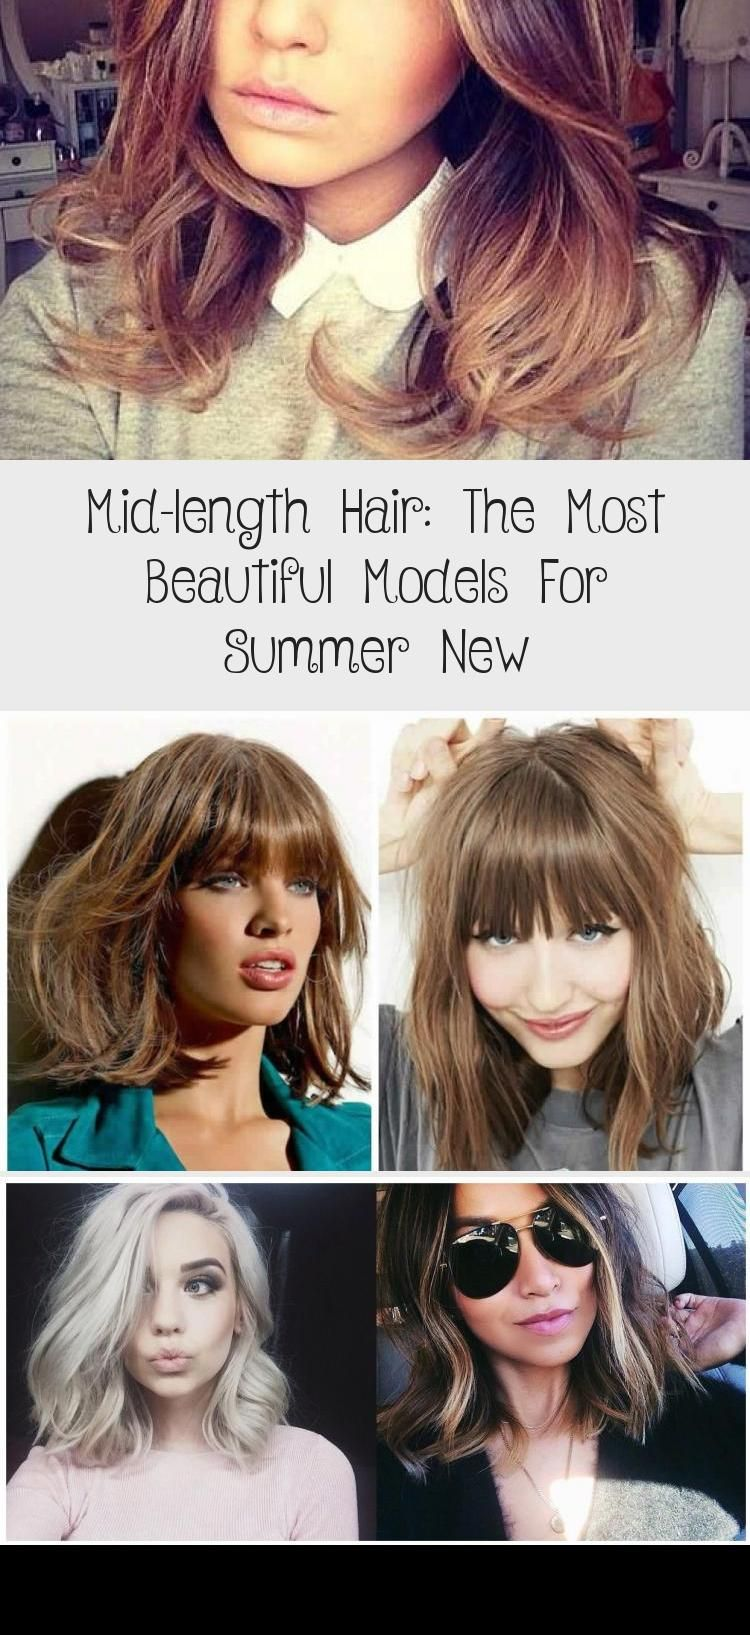 mid-length hair: the most beautiful models for summer New